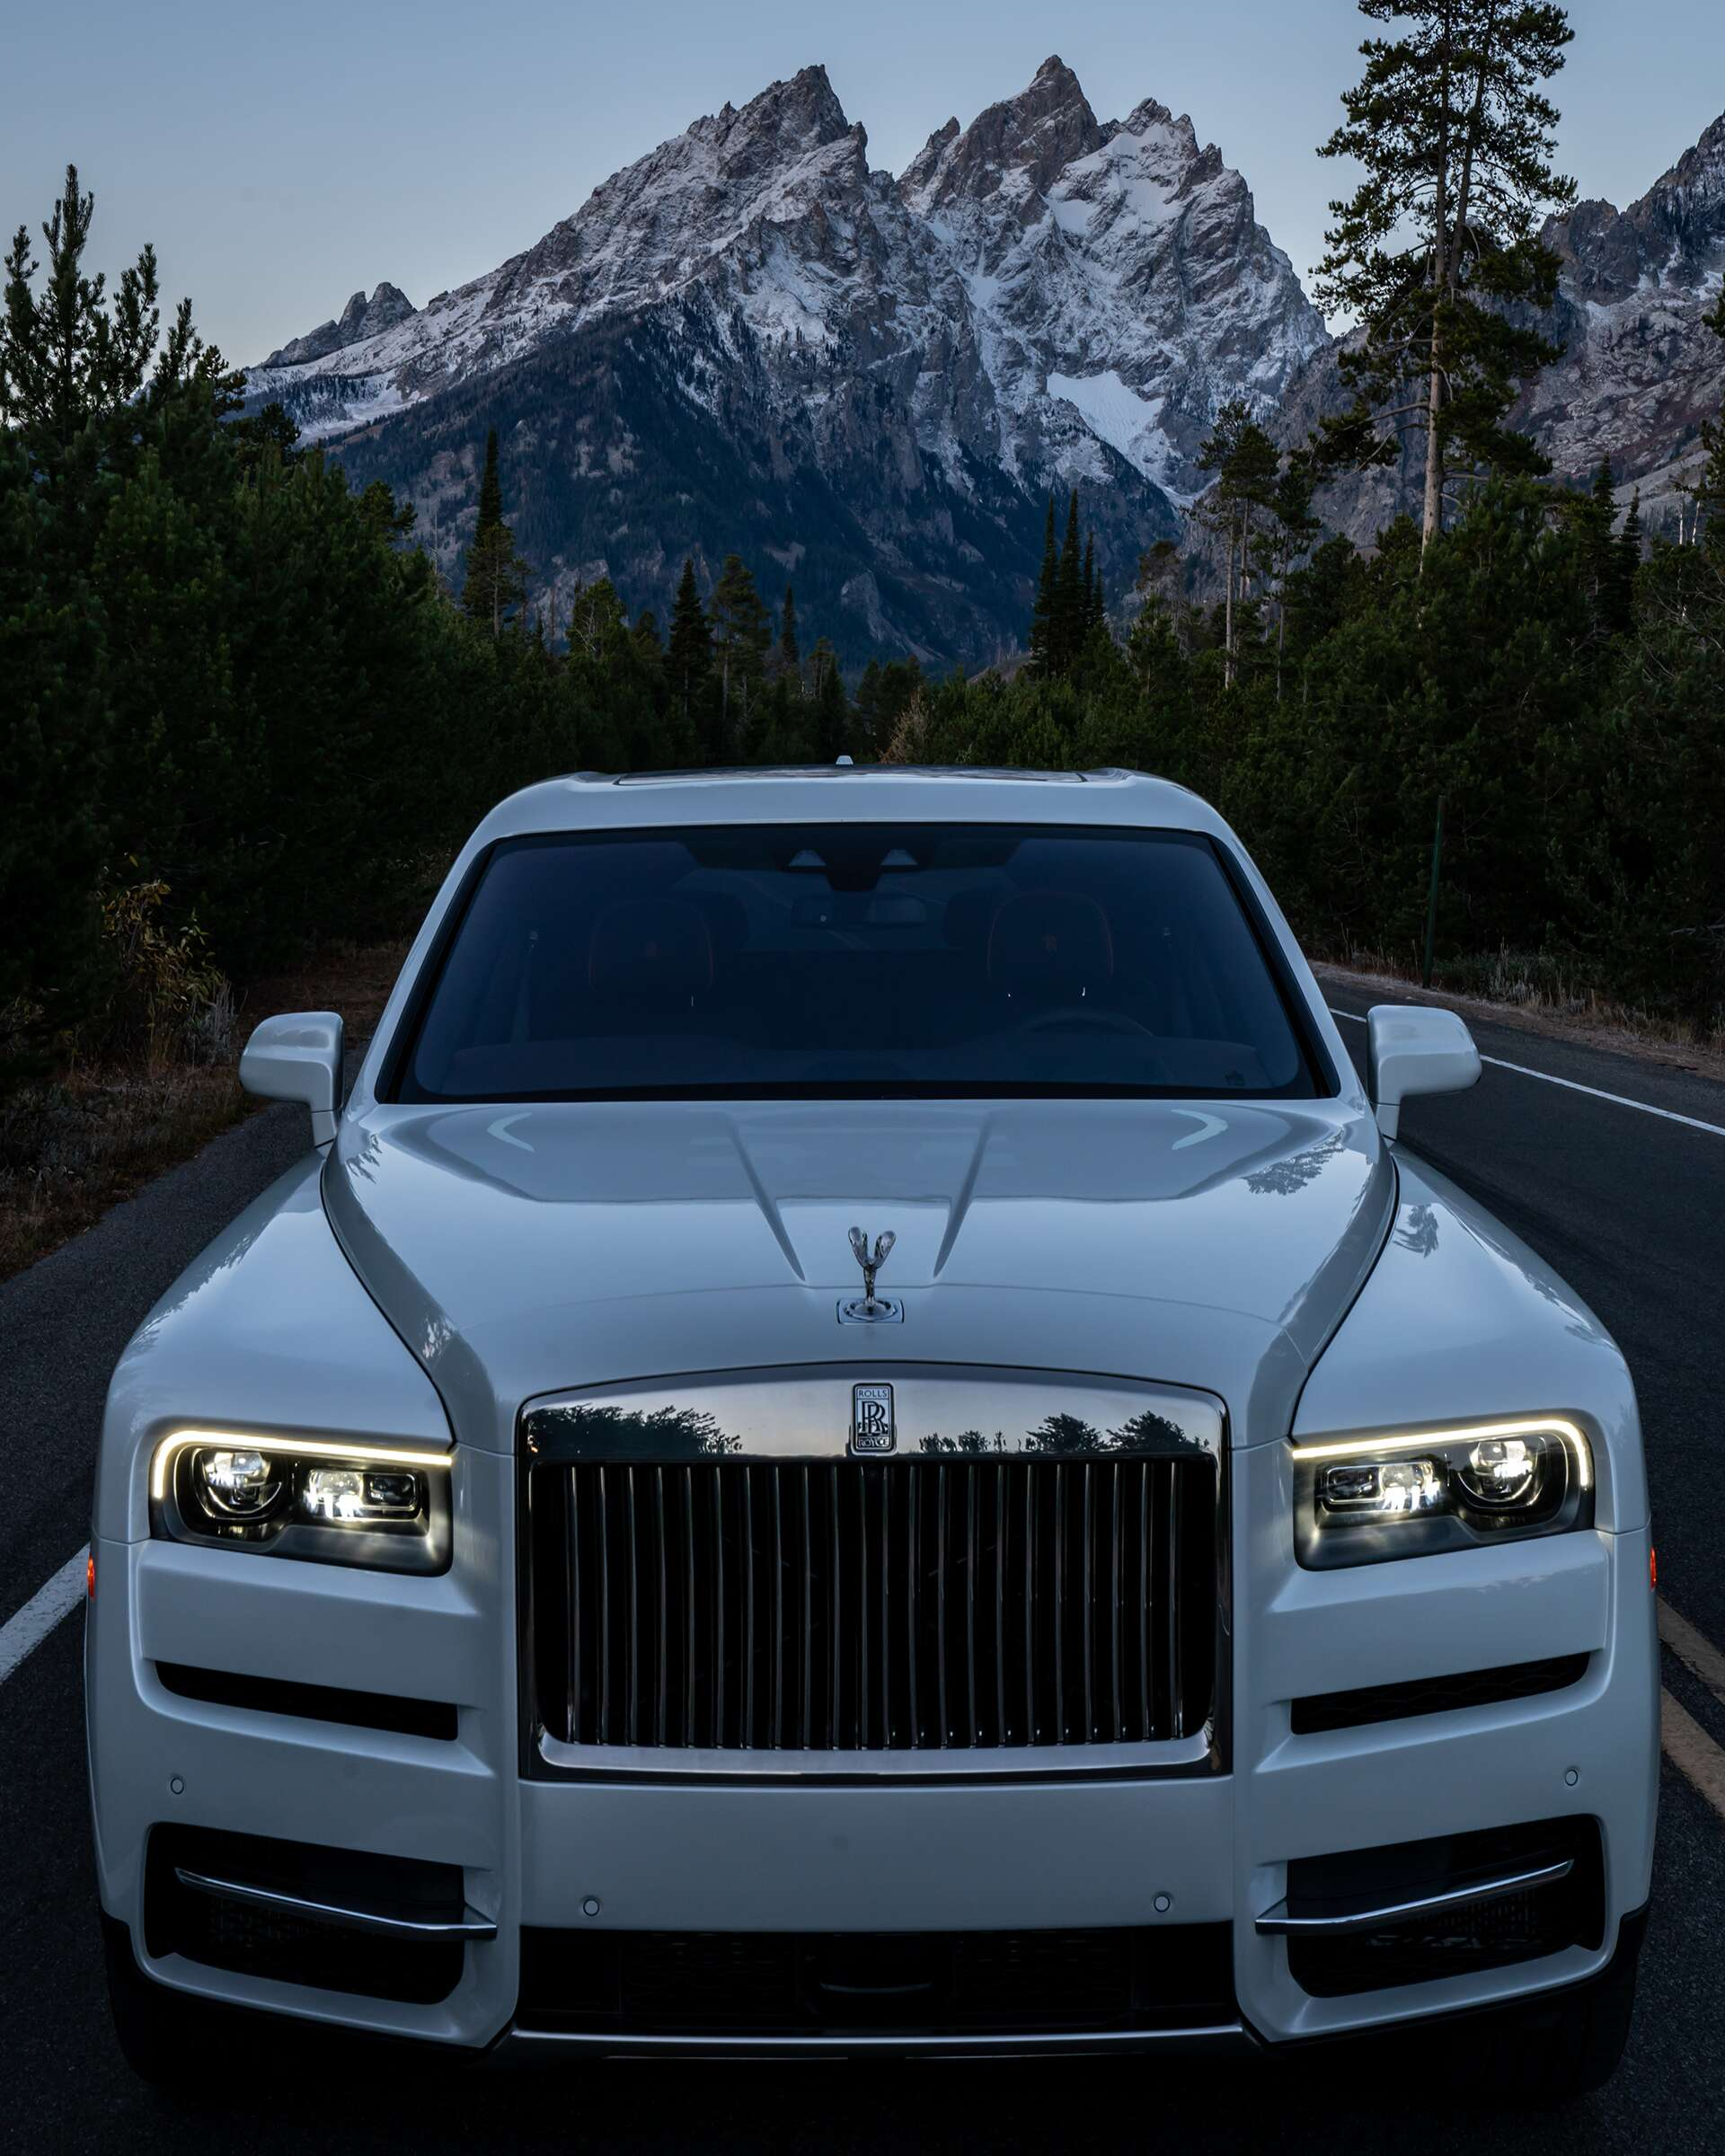 Supercar Duo Luxurycorp Rollsroyce